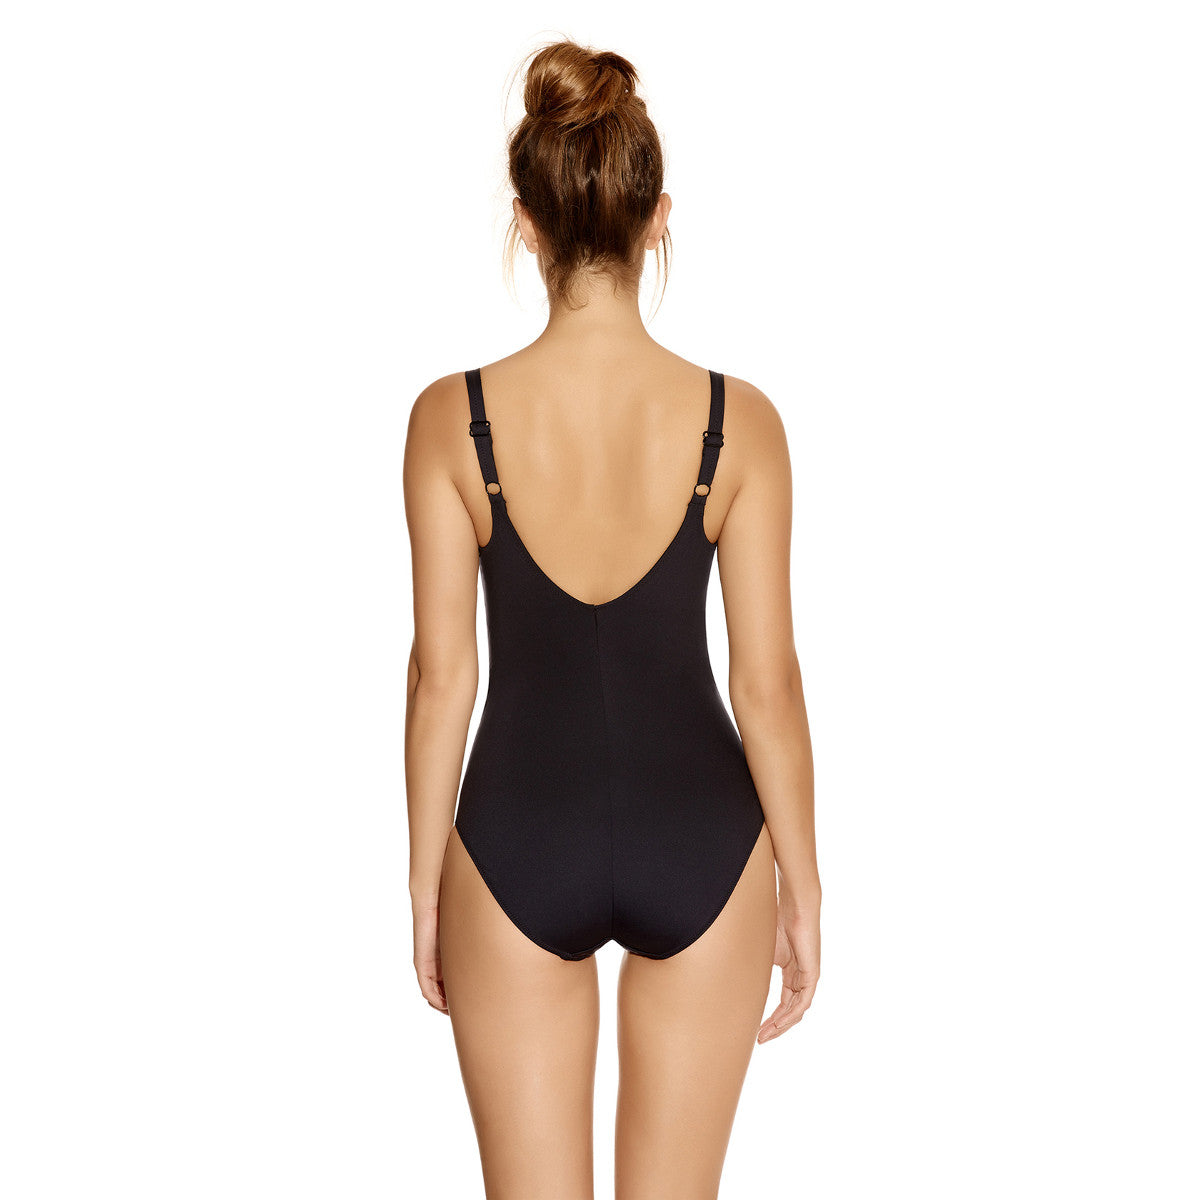 03a62042a75 Fantasie Versailles Black One Piece Swimsuit - 5754BLK ...